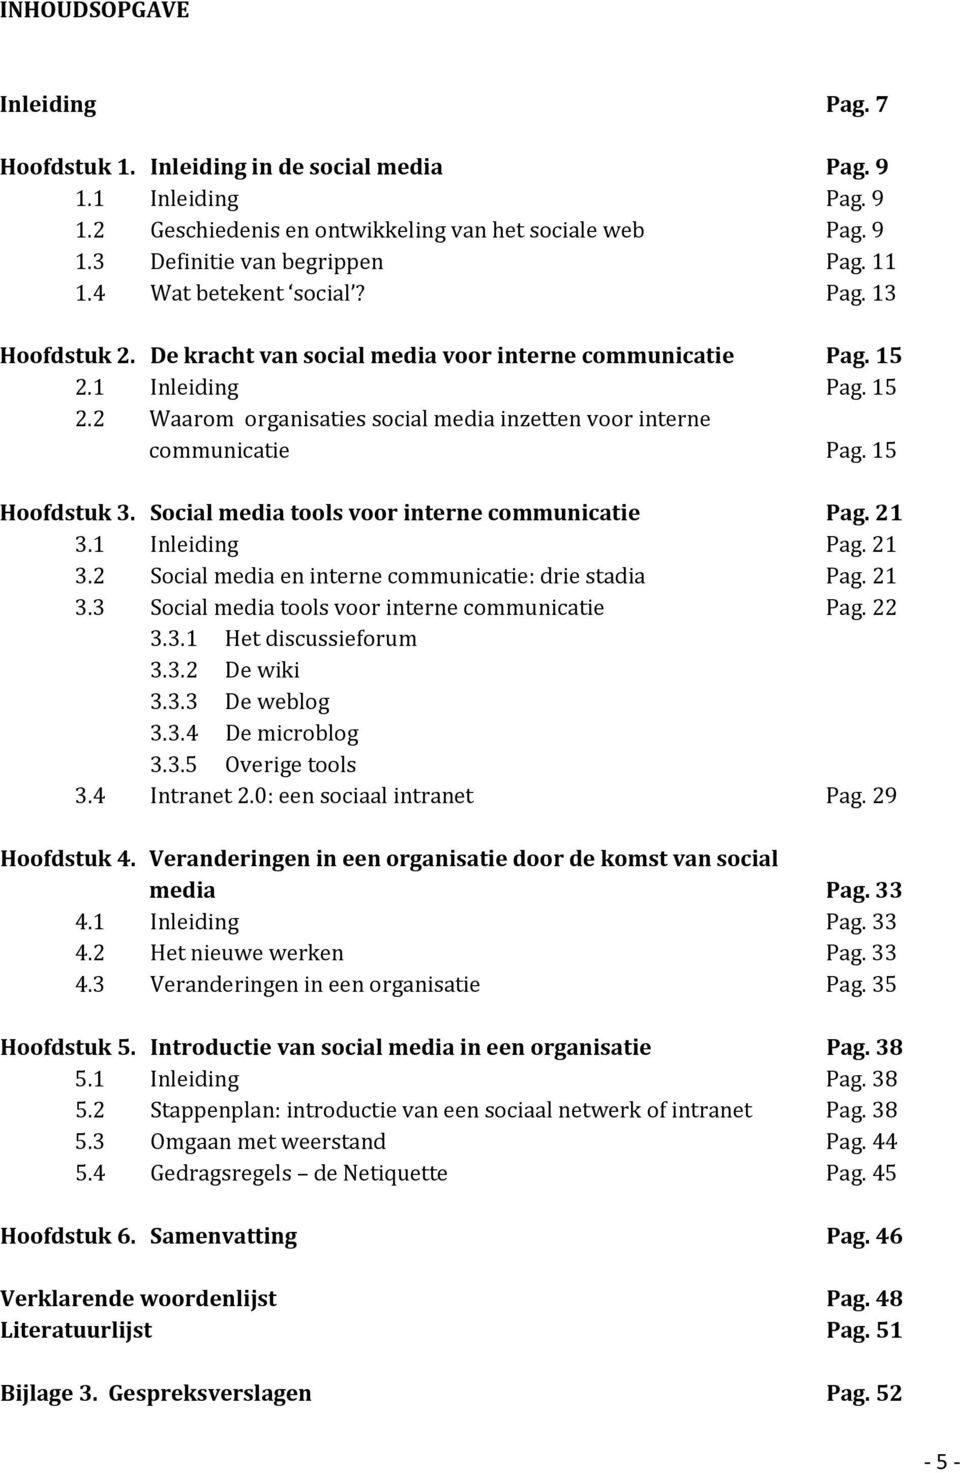 15 Hoofdstuk 3. Social media tools voor interne communicatie Pag. 21 3.1 Inleiding Pag. 21 3.2 Social media en interne communicatie: drie sta dia Pag. 21 3.3 Social media tools voor interne communicatie Pag.